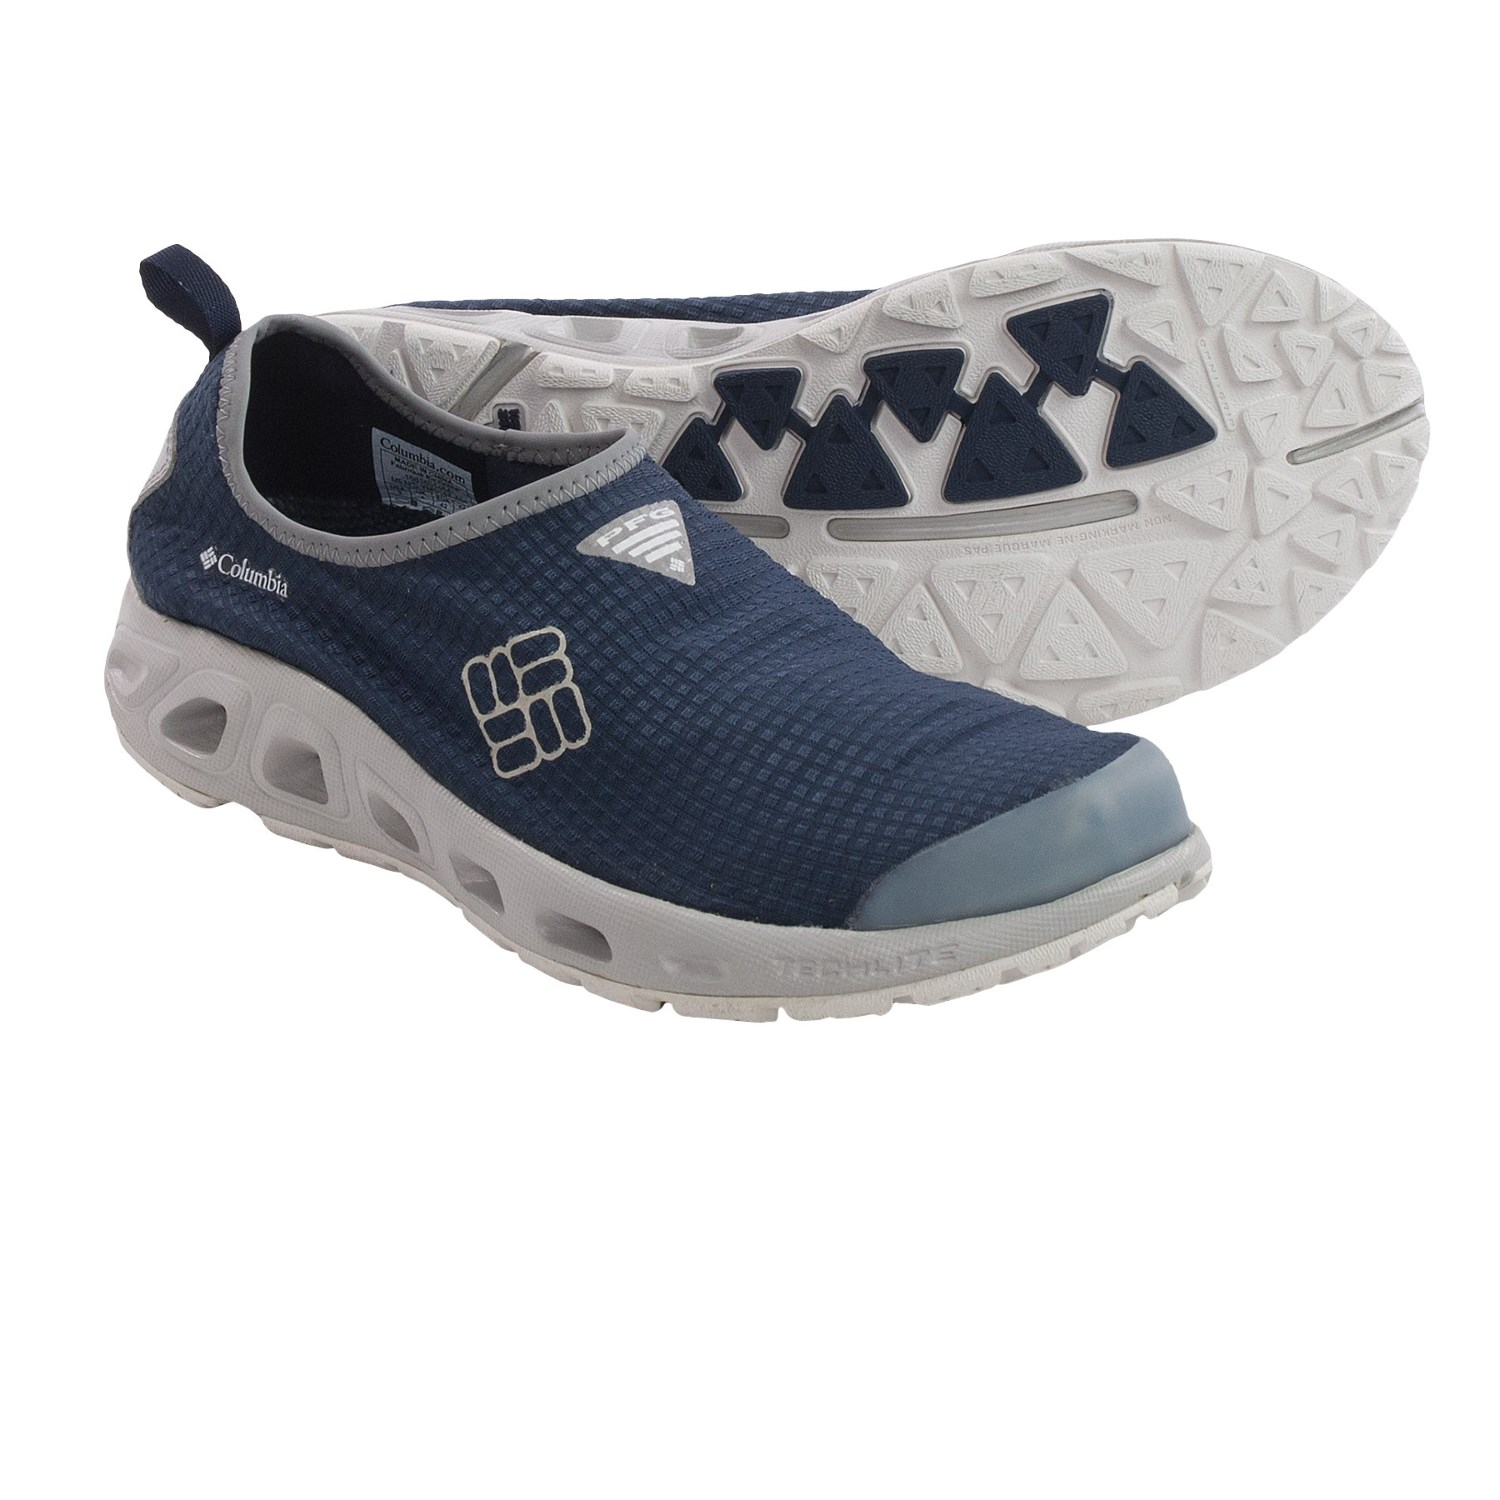 Columbia Water Shoes Size